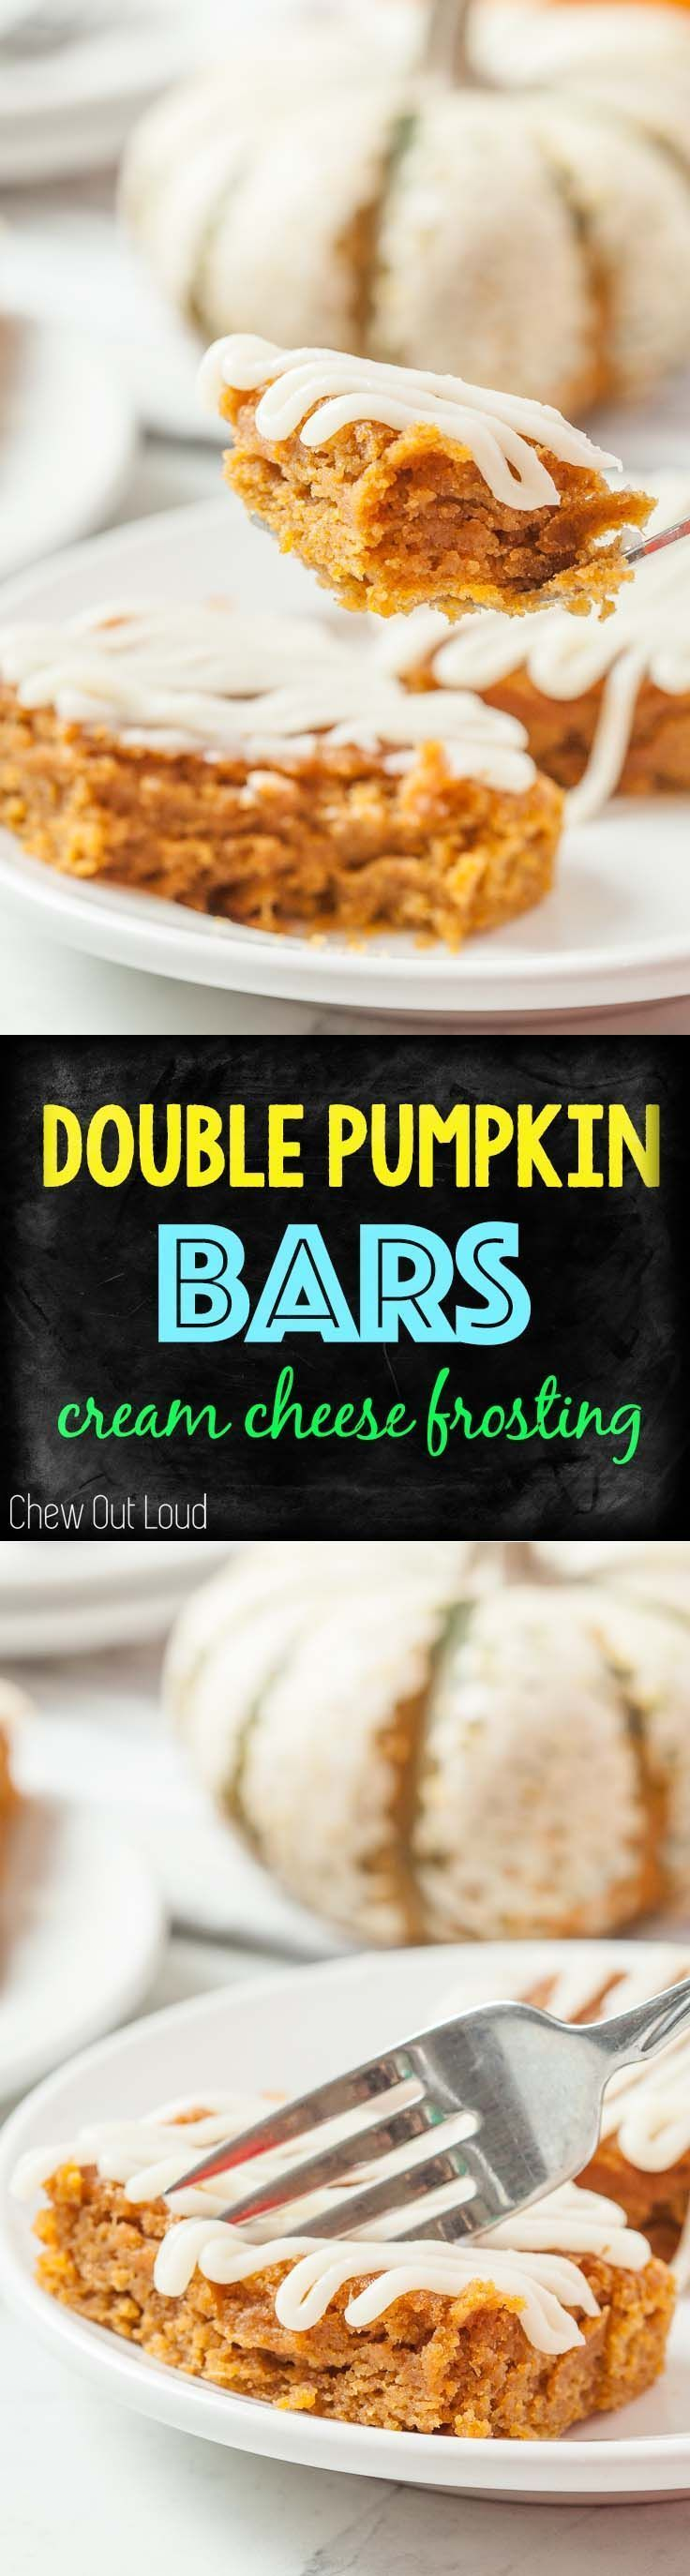 Double Pumpkin Bars With Cream Cheese Frosting  Chewy Moist